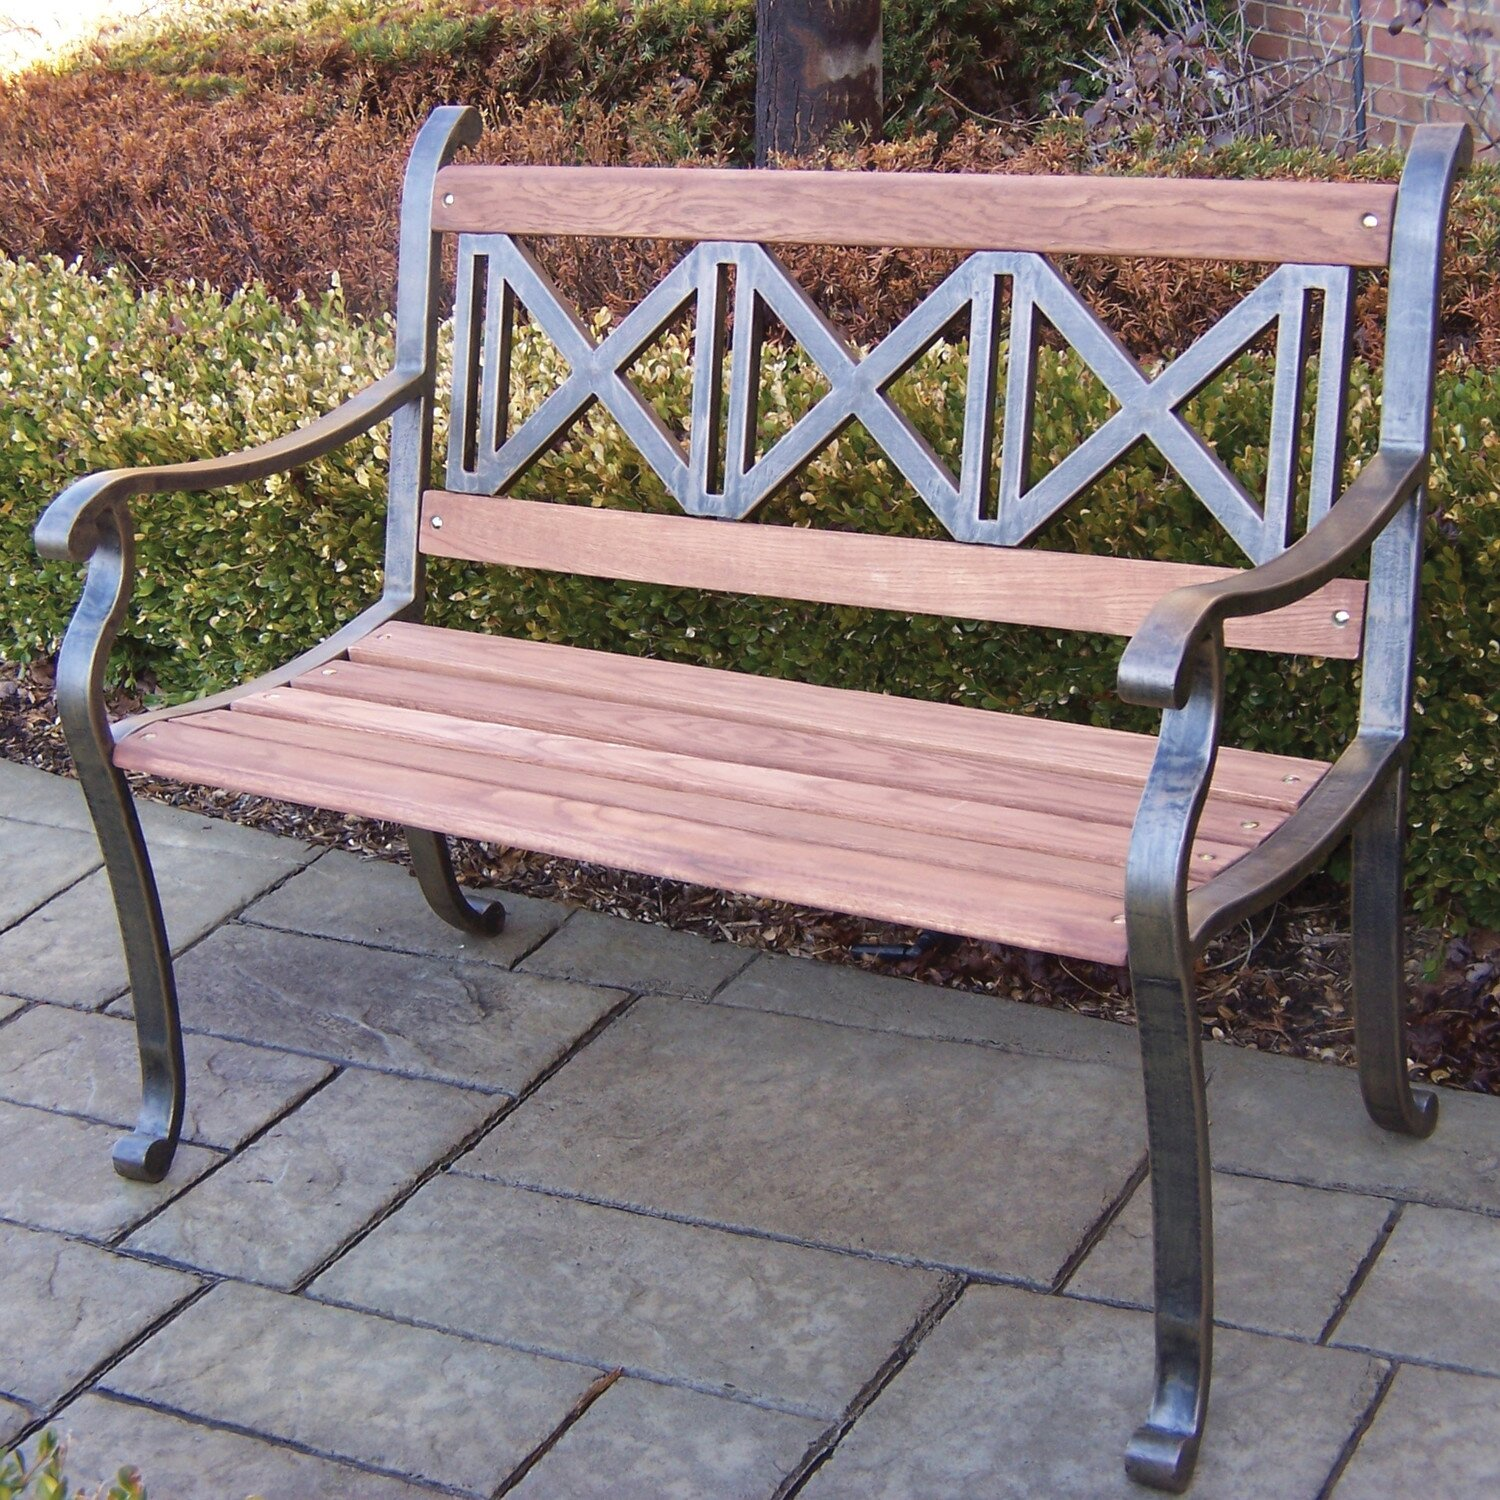 patio chairs lowes lowes porch furniture lowes lounge chairs - Garden Furniture Lowes